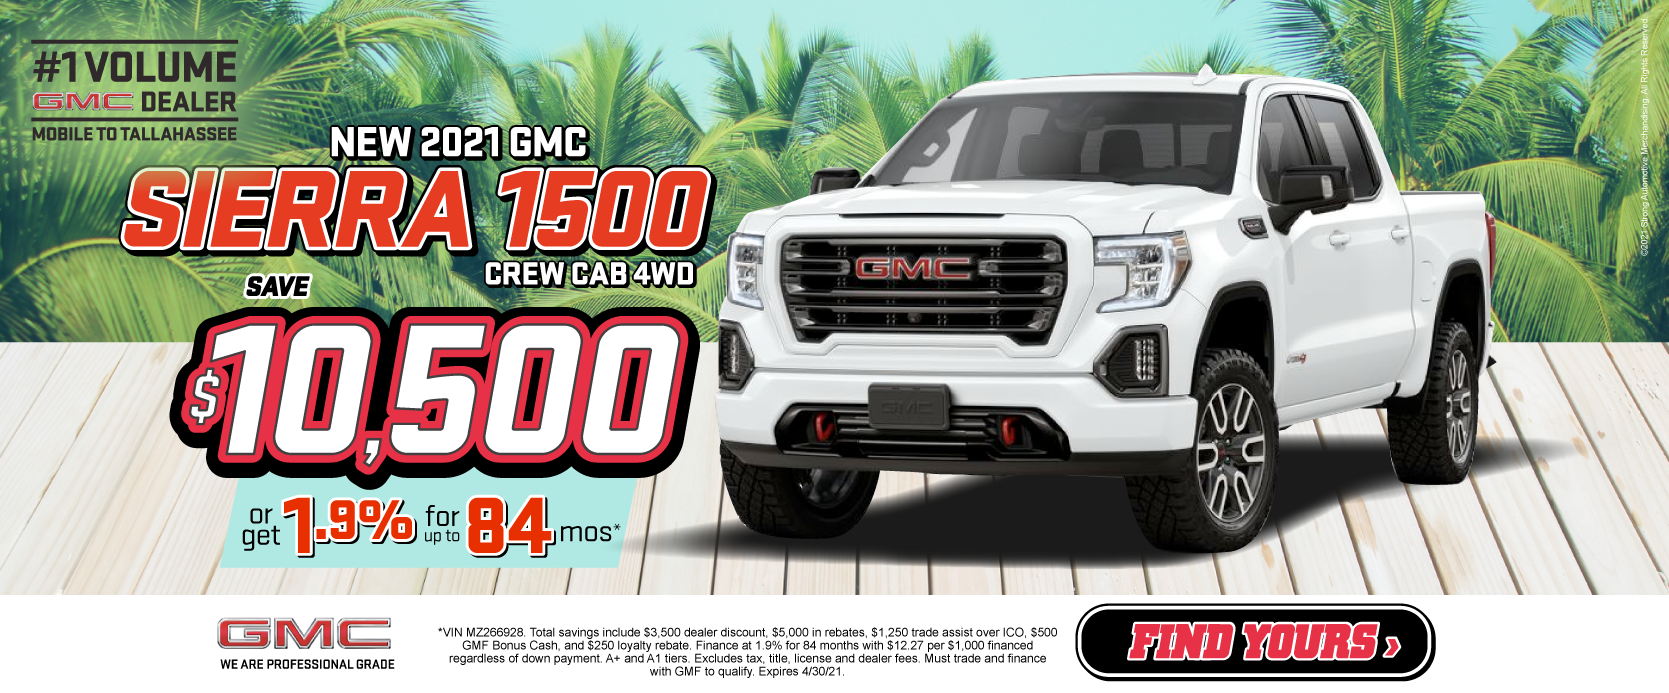 New 2021 GMC Sierra Save over $10,500